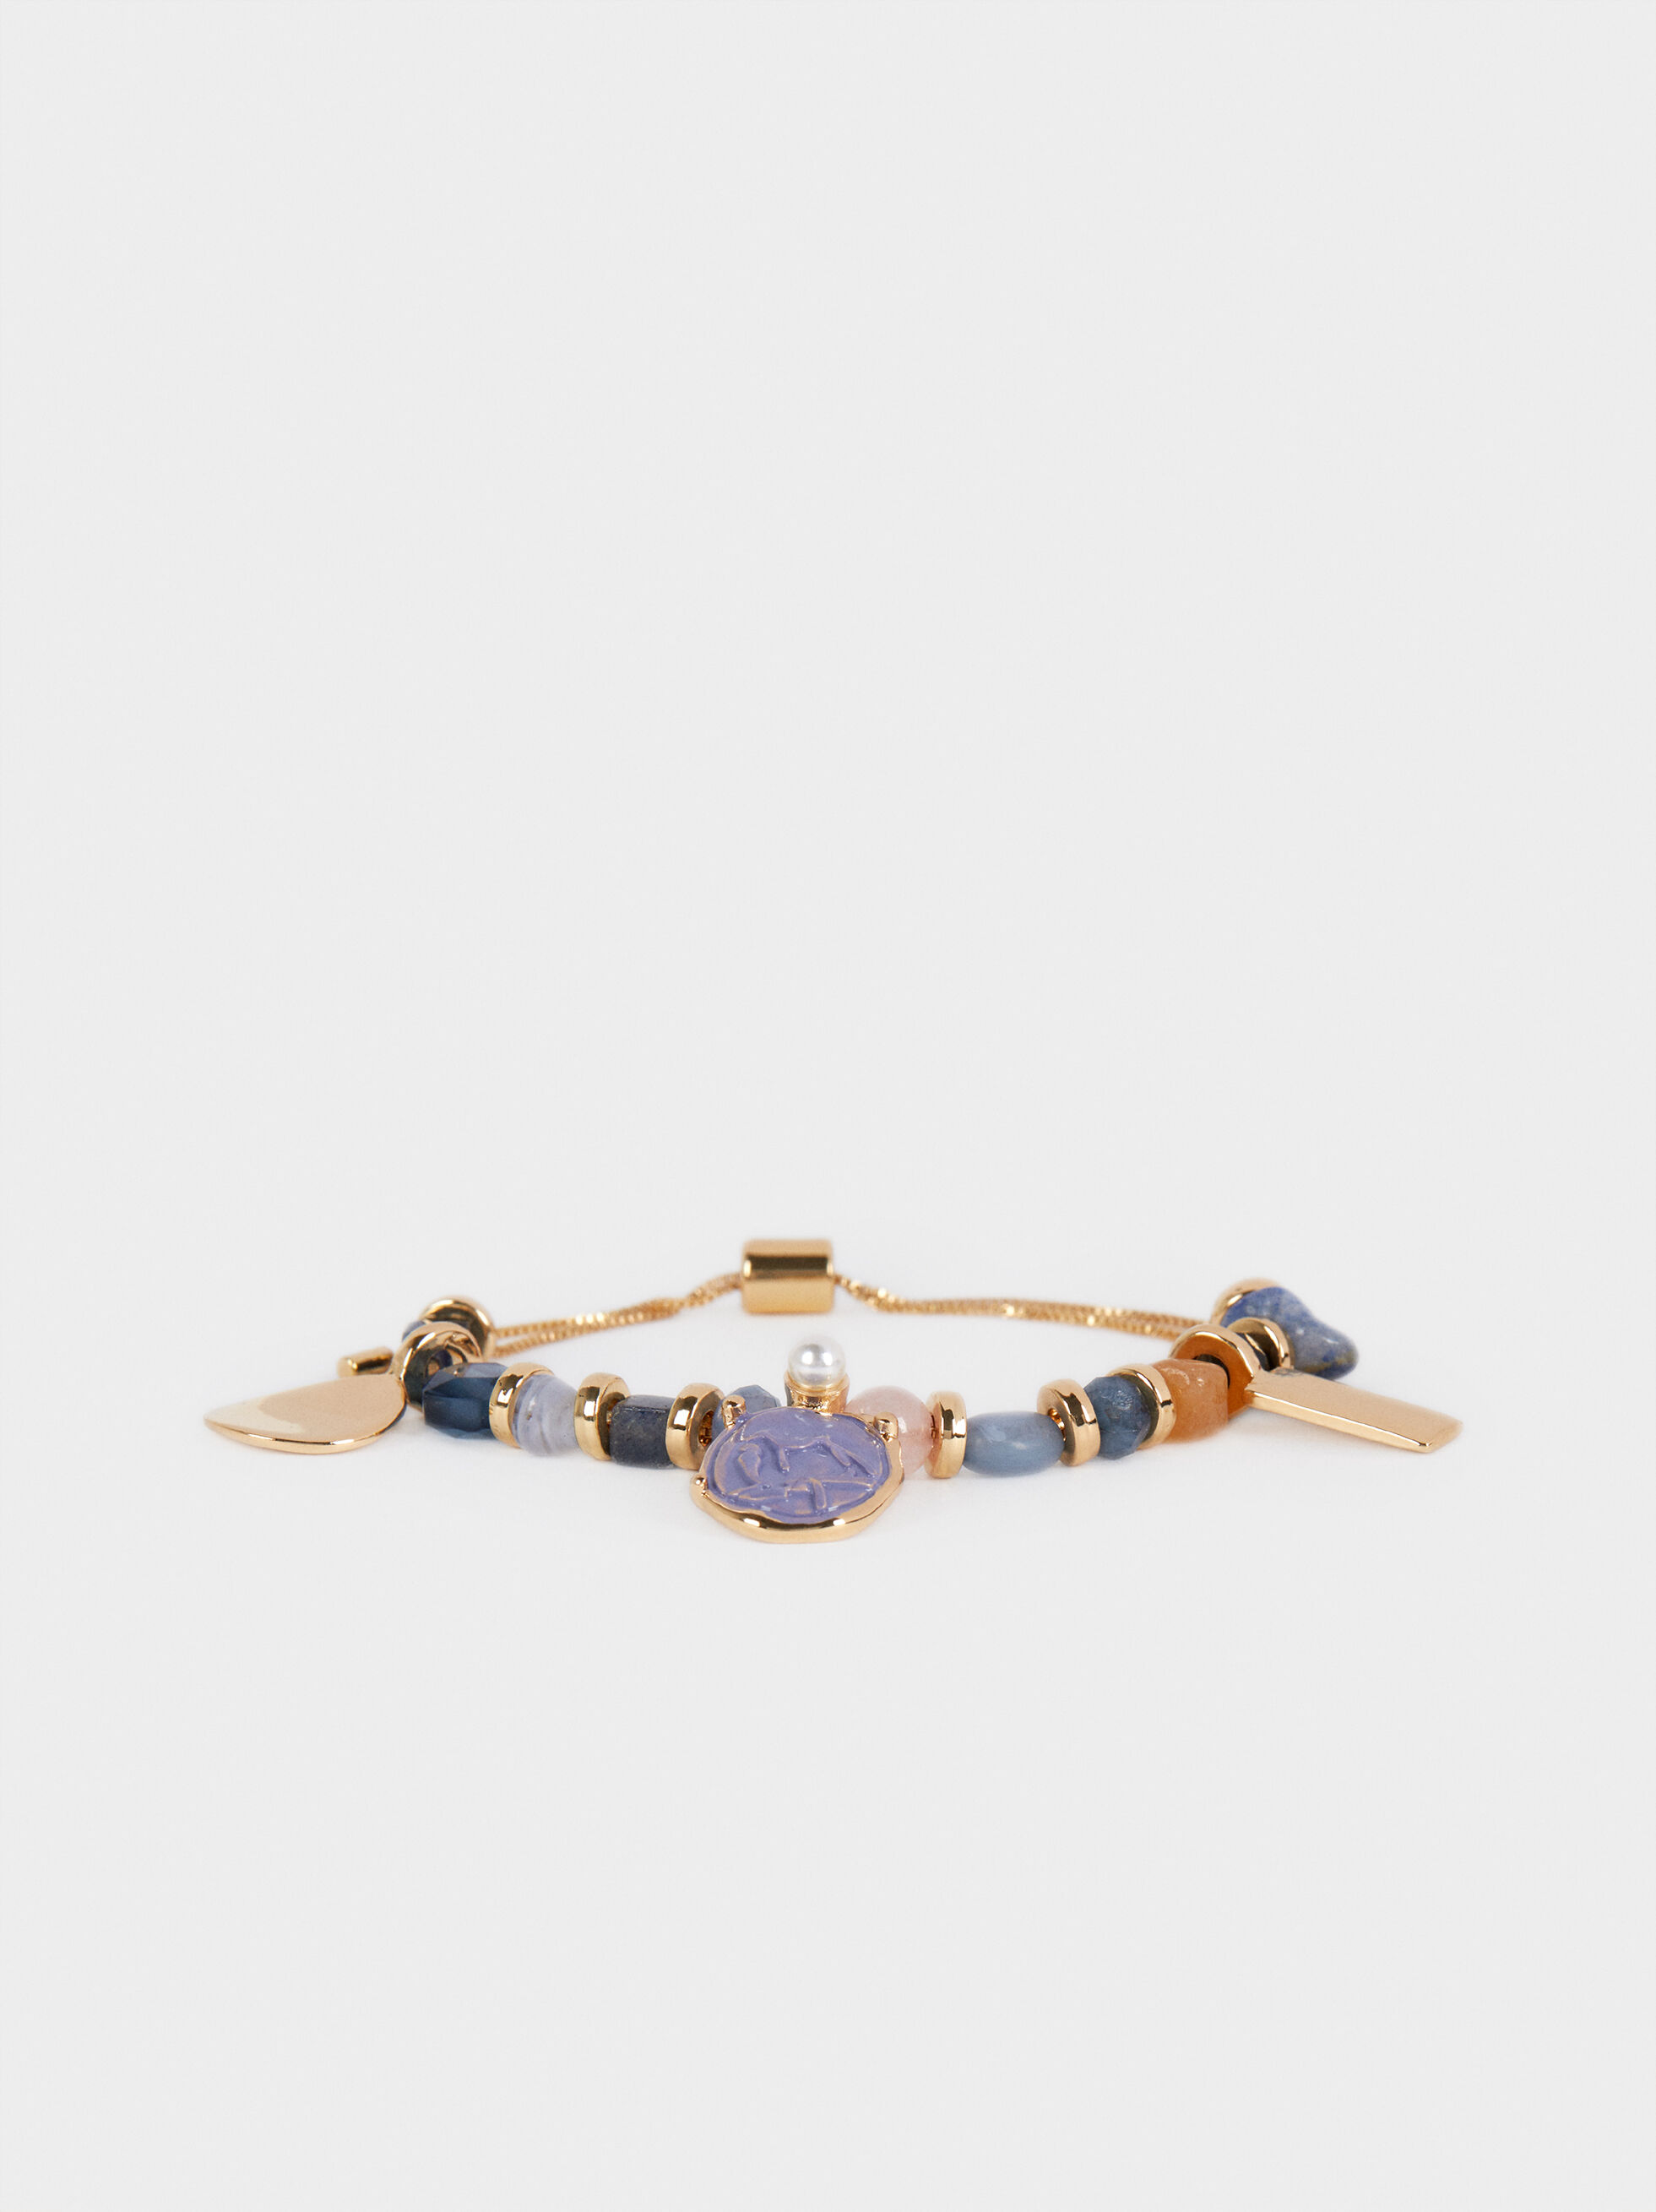 Adjustable Gold Bracelet With Gems, Multicolor, hi-res